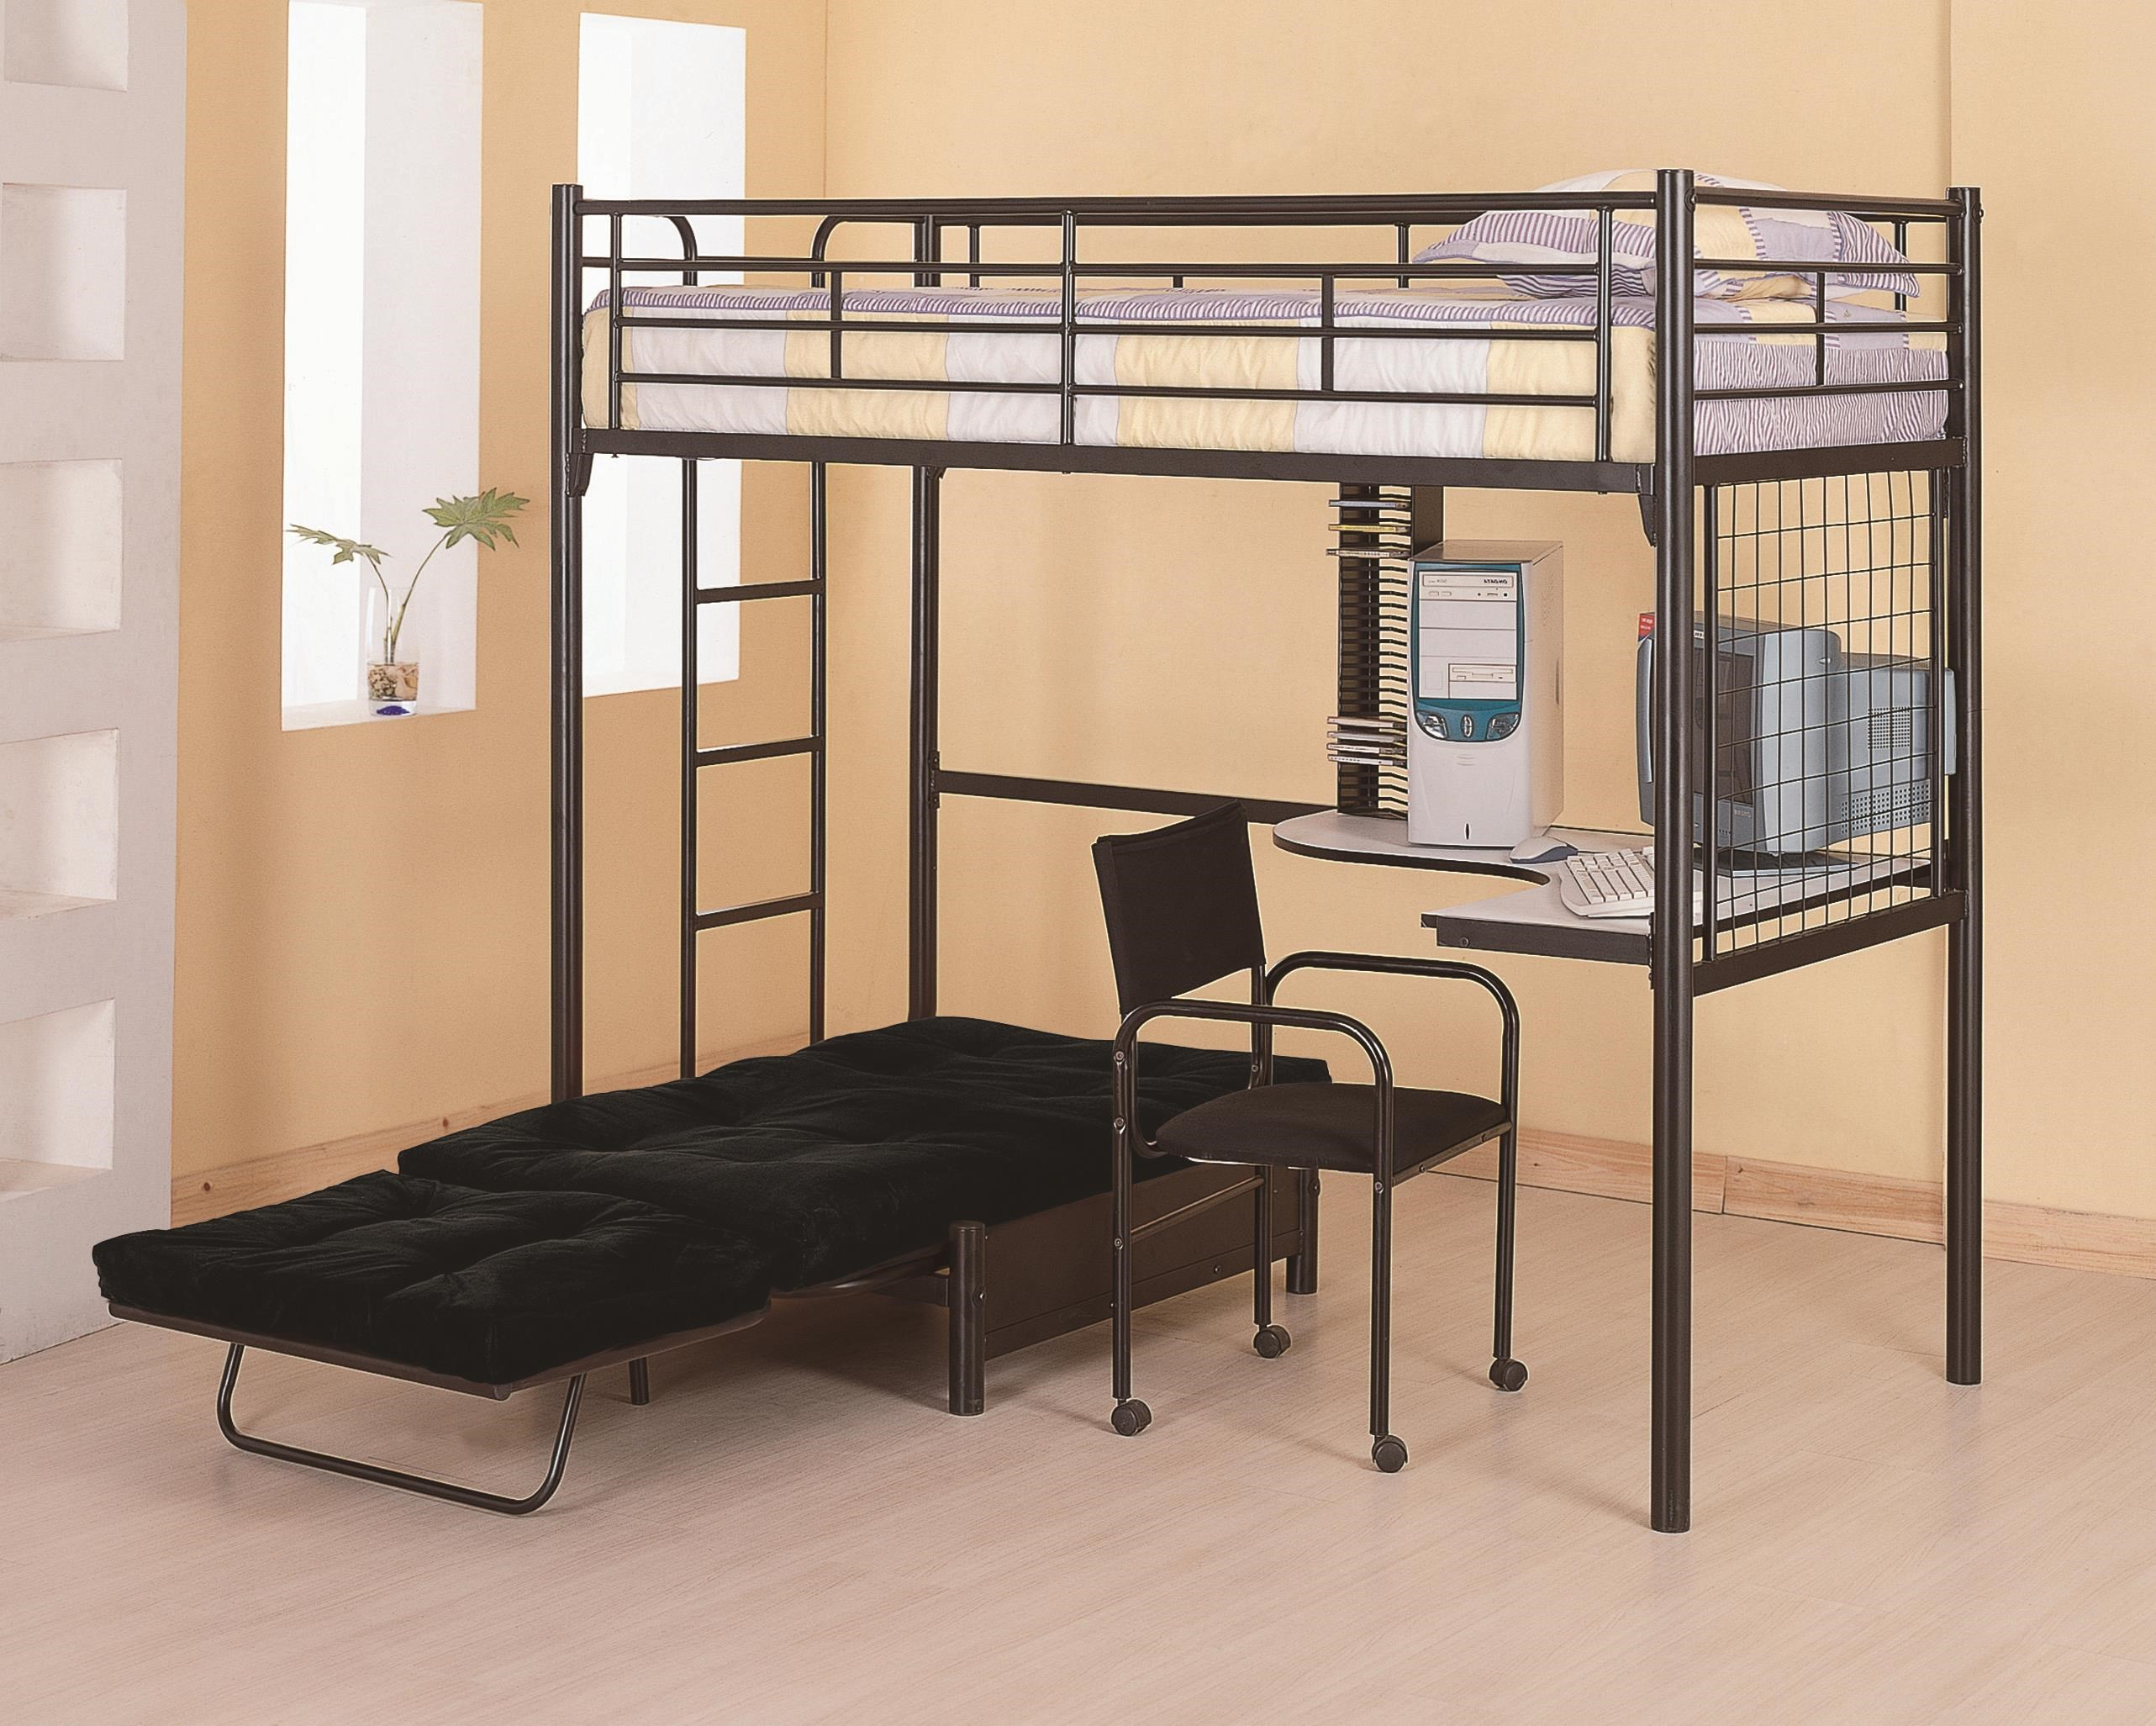 products%2Fcoaster%2Fcolor%2Fbunks_2209%2B2335m-b2